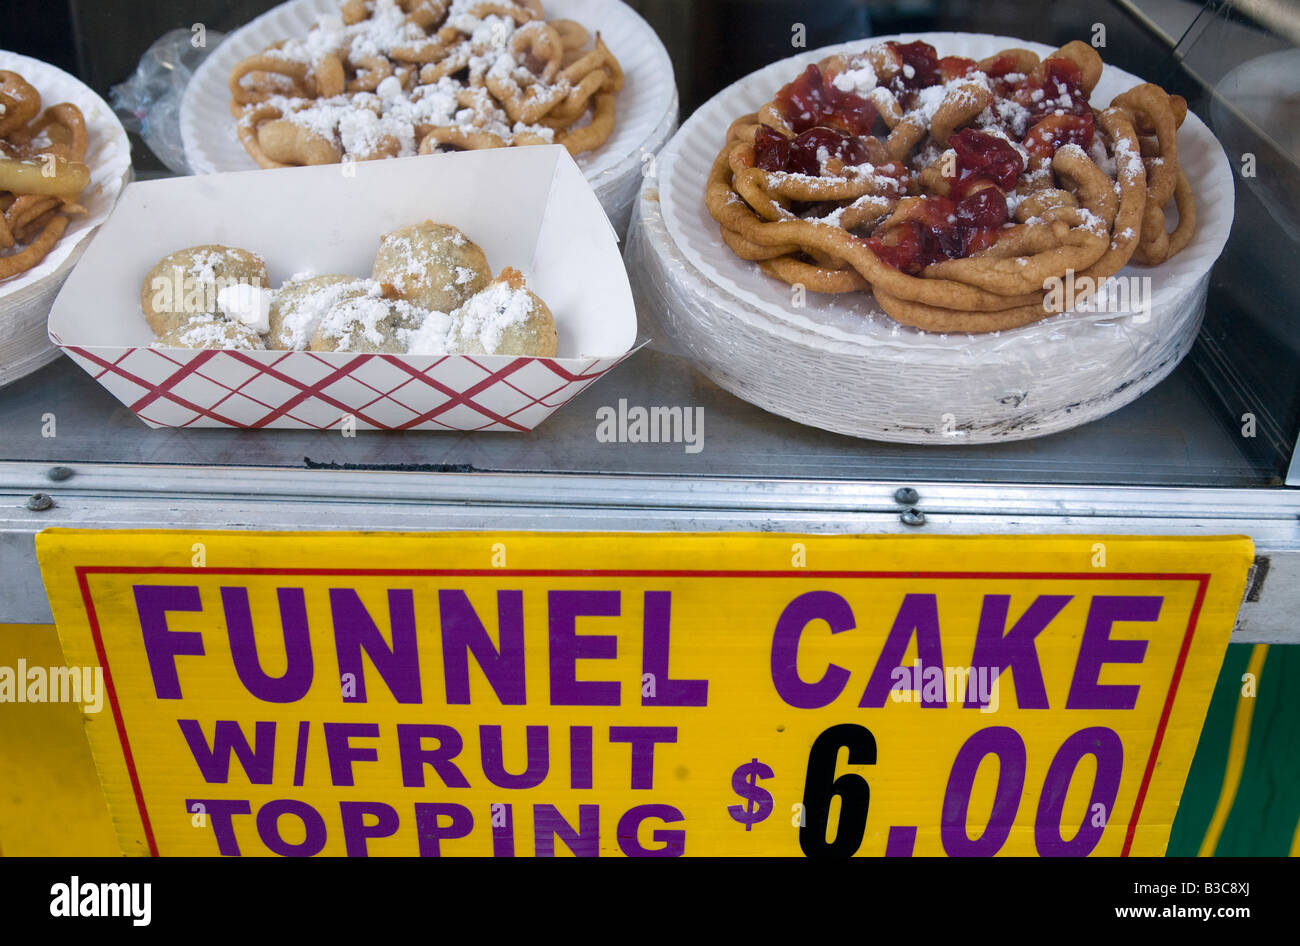 Where To Buy Funnel For Funnel Cake